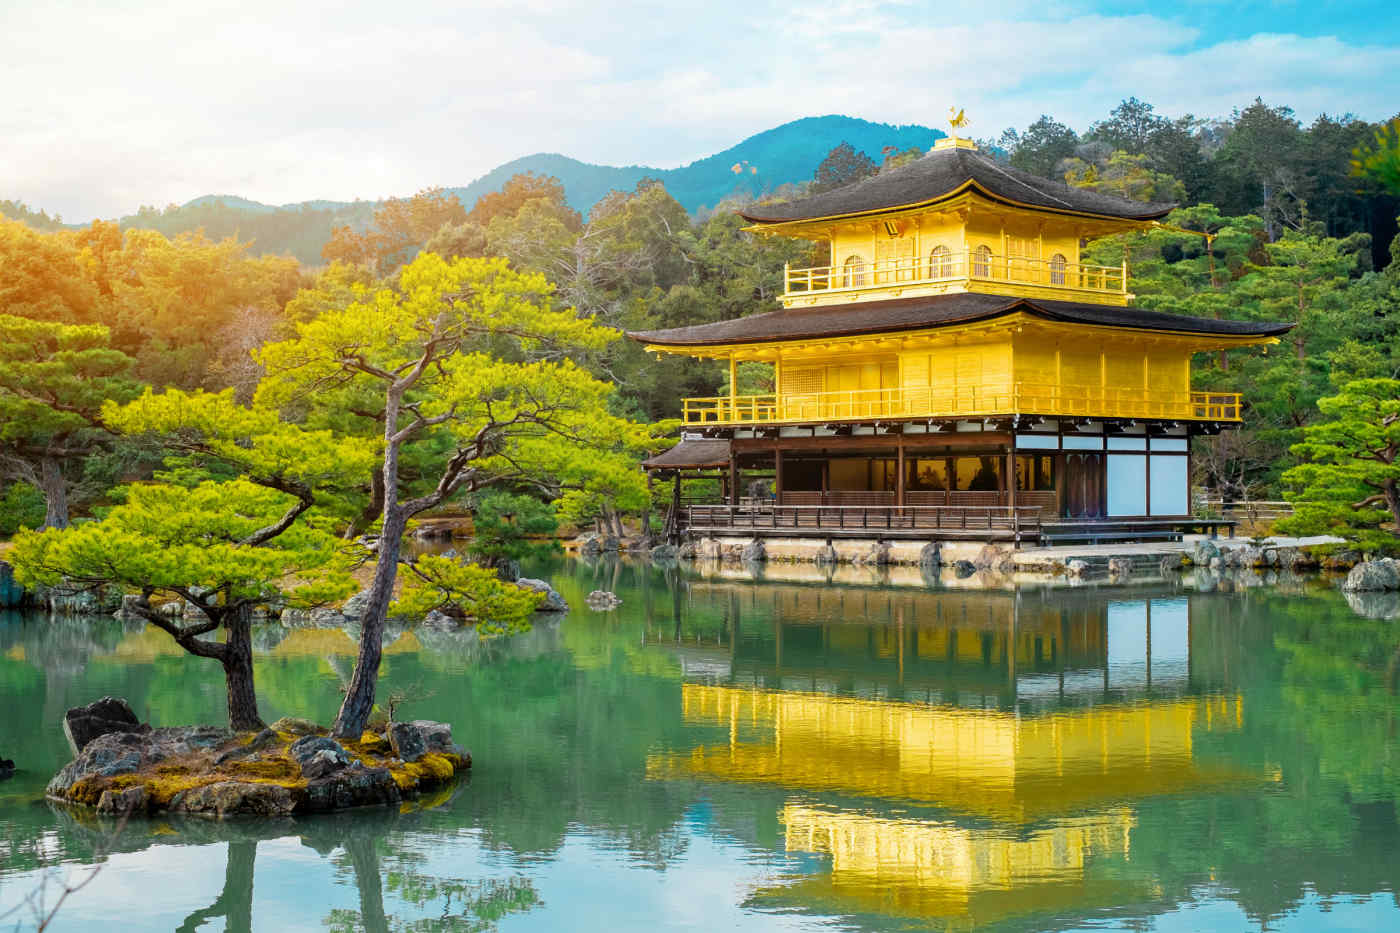 Kinkakuji, the Temple of the Gold Pavilion.